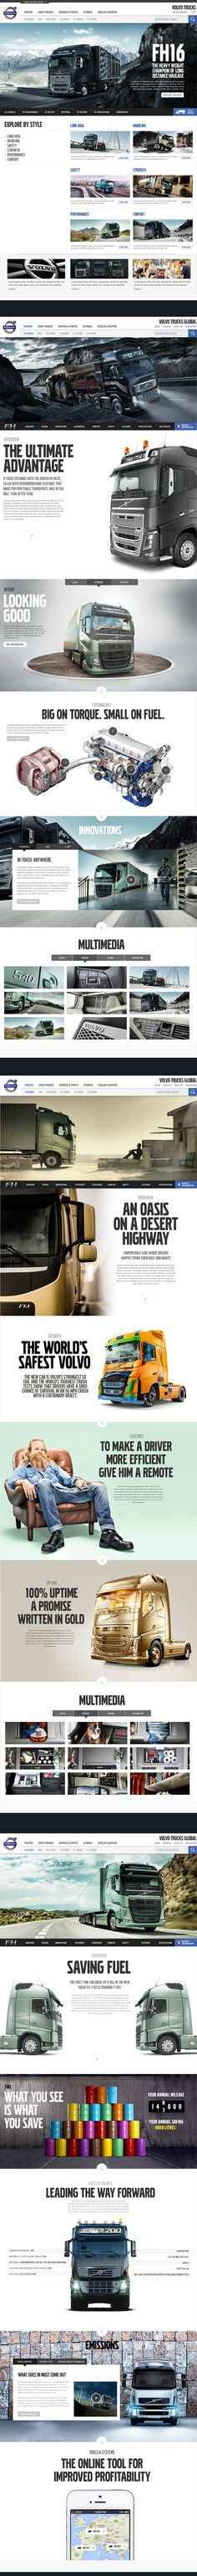 Volvo Trucks - Global Website by Thomas Moeller, via Behance